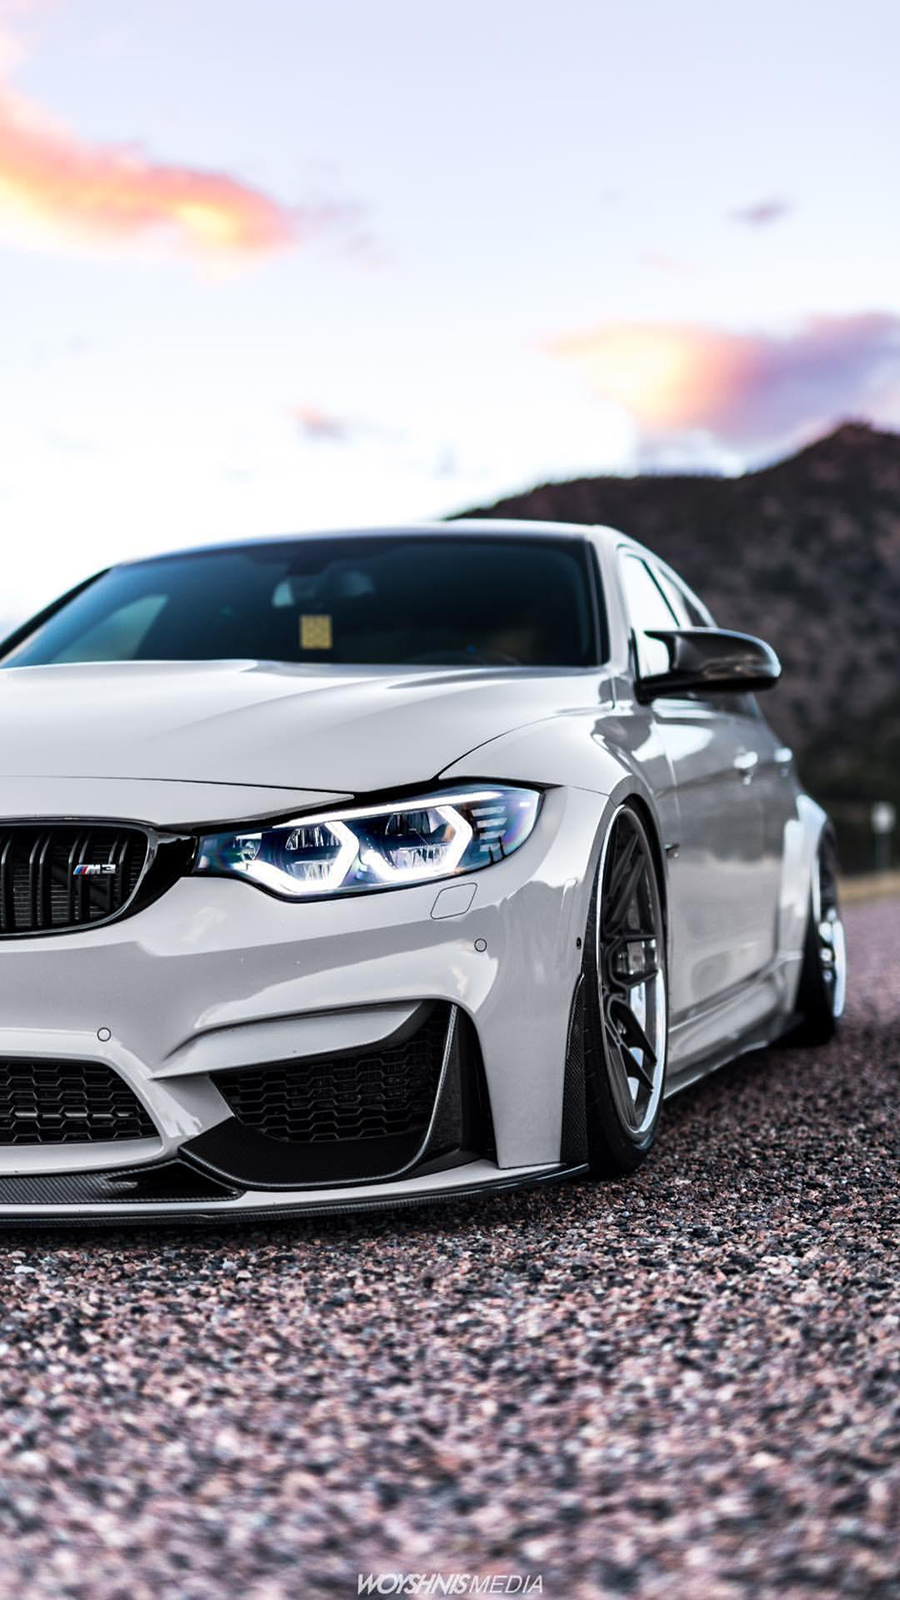 Modified BMW Wallpaper – Most Popular BMW Wallpapers Free Download